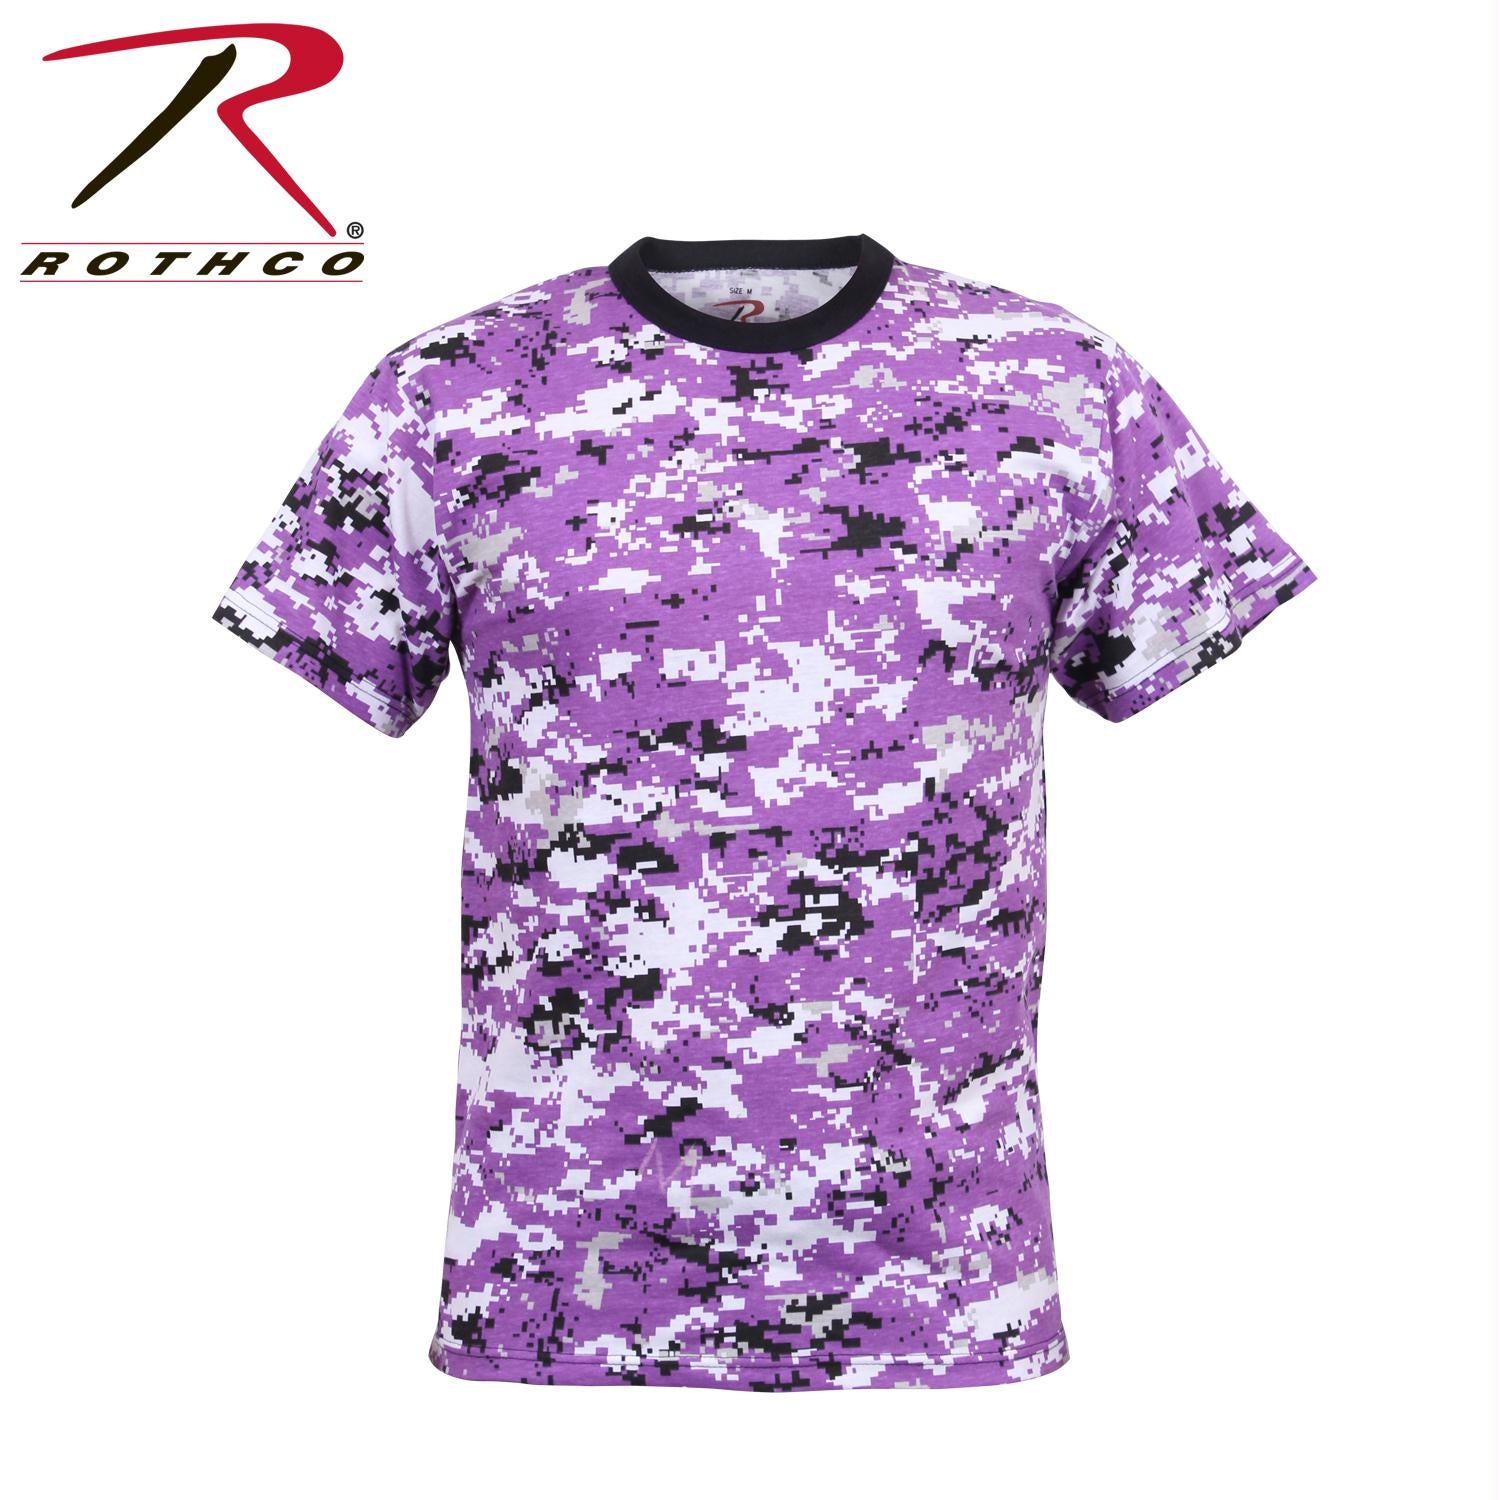 Rothco Digital Camo T-Shirt - Ultra Violet Digital Camo / 2XL